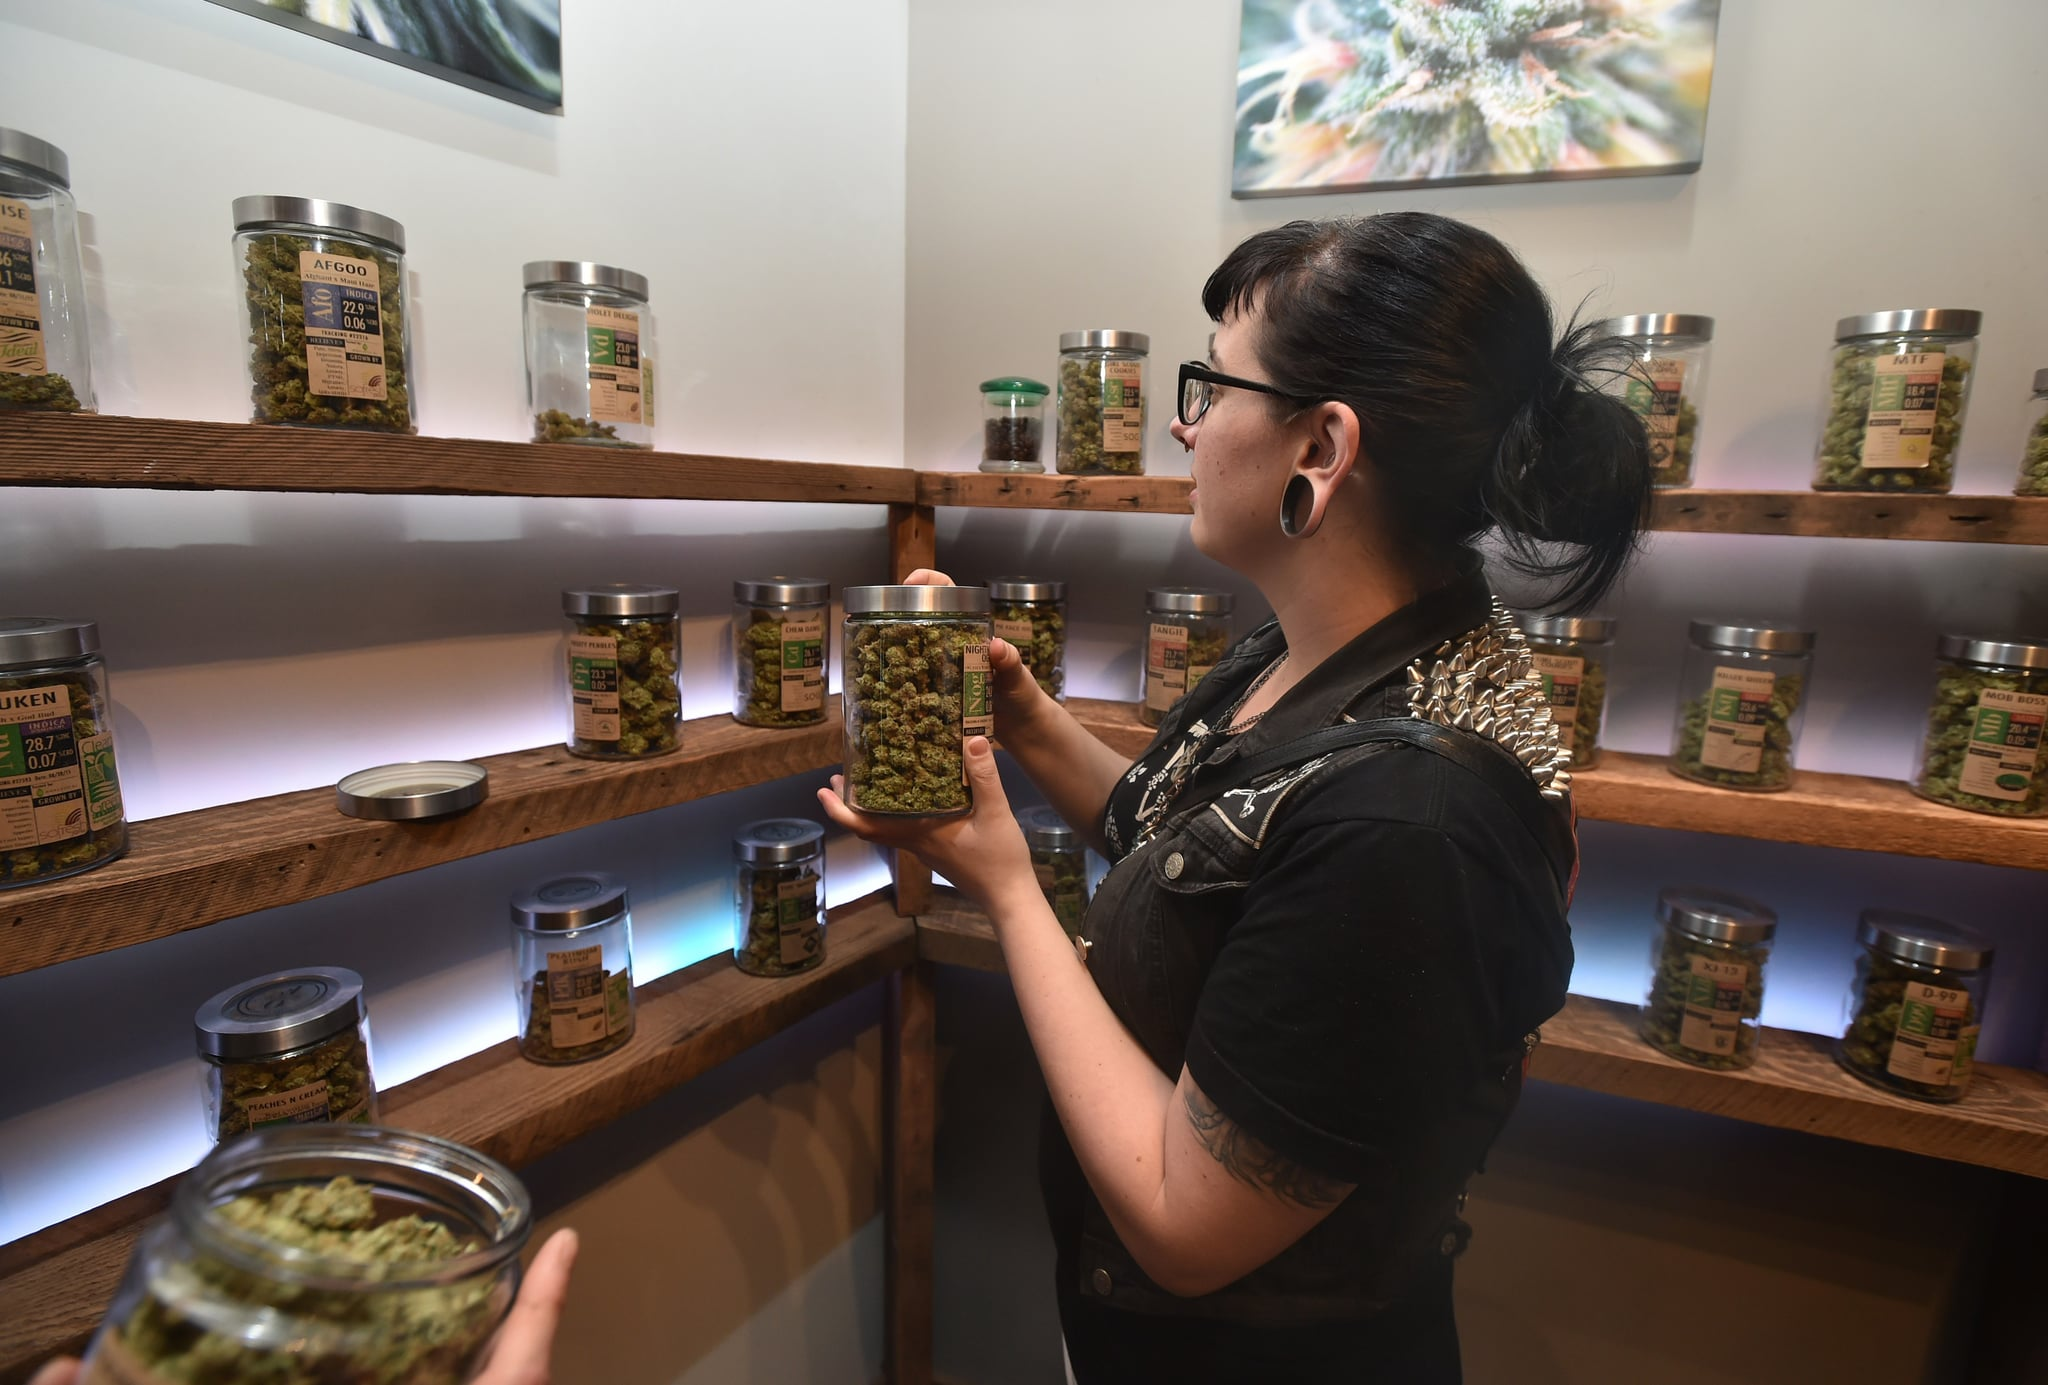 A woman shops at Oregon's Finest, a marijuana dispensary in Portland, Oregon, on October 4, 2015. As of October 1, 2015 limited amounts of recreational marijuana became legal for all adults over the age of 21 to purchase in the state of Oregon. AFP PHOTO/JOSH EDELSON        (Photo credit should read Josh Edelson/AFP/Getty Images)